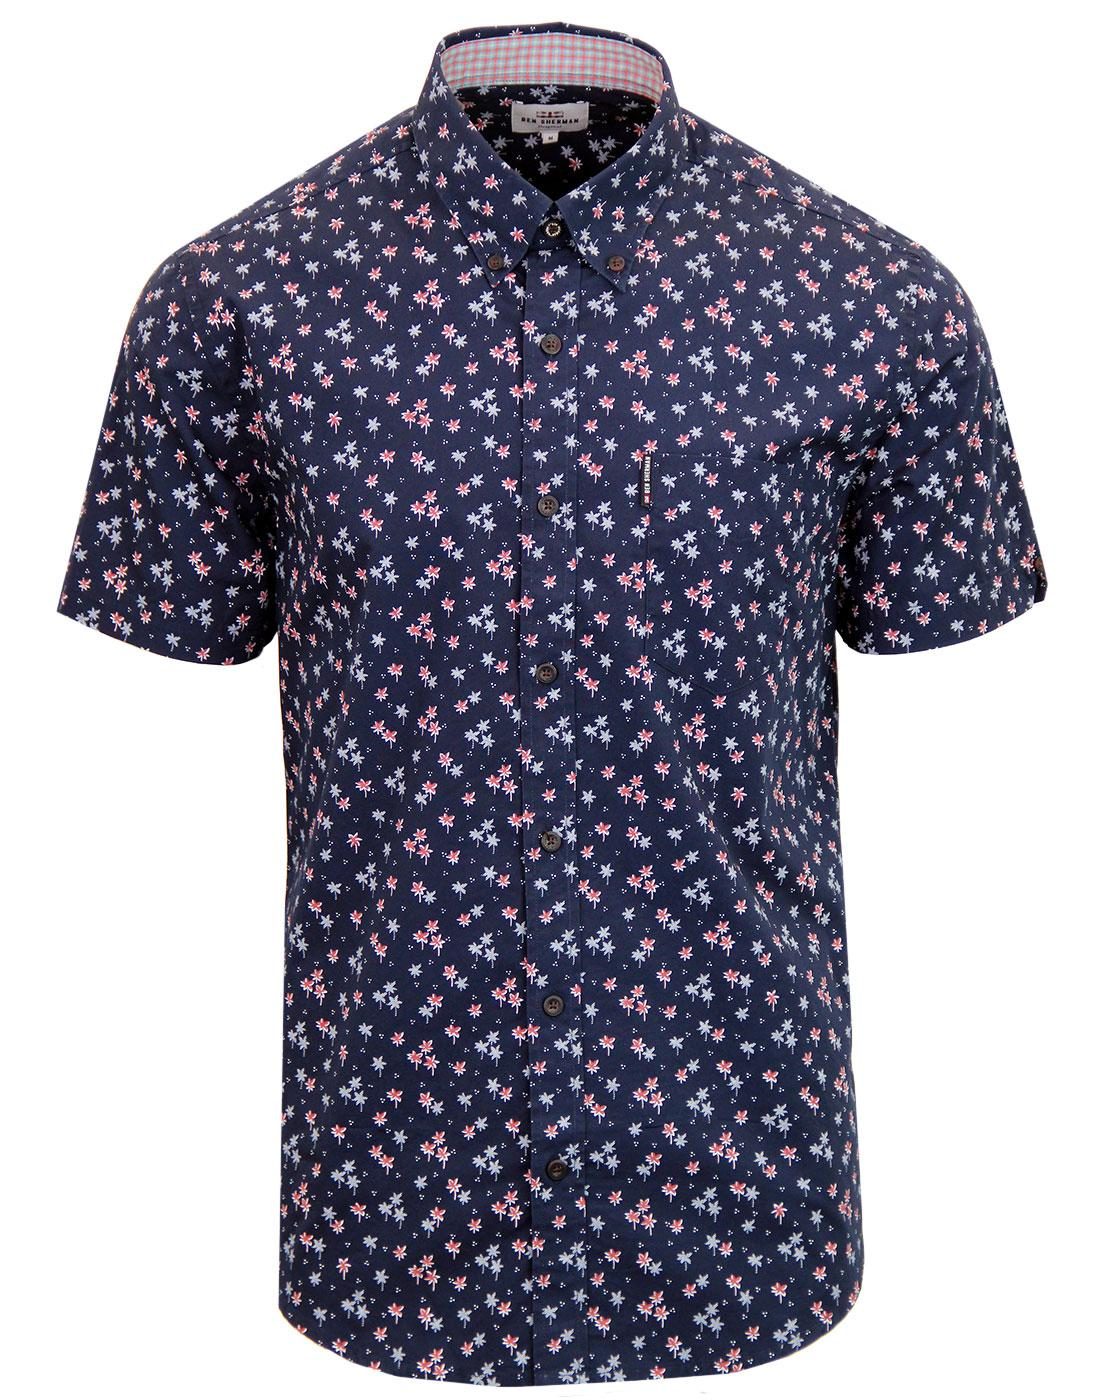 BEN SHERMAN Retro Mod Palm Tree Dot Shirt BLUE